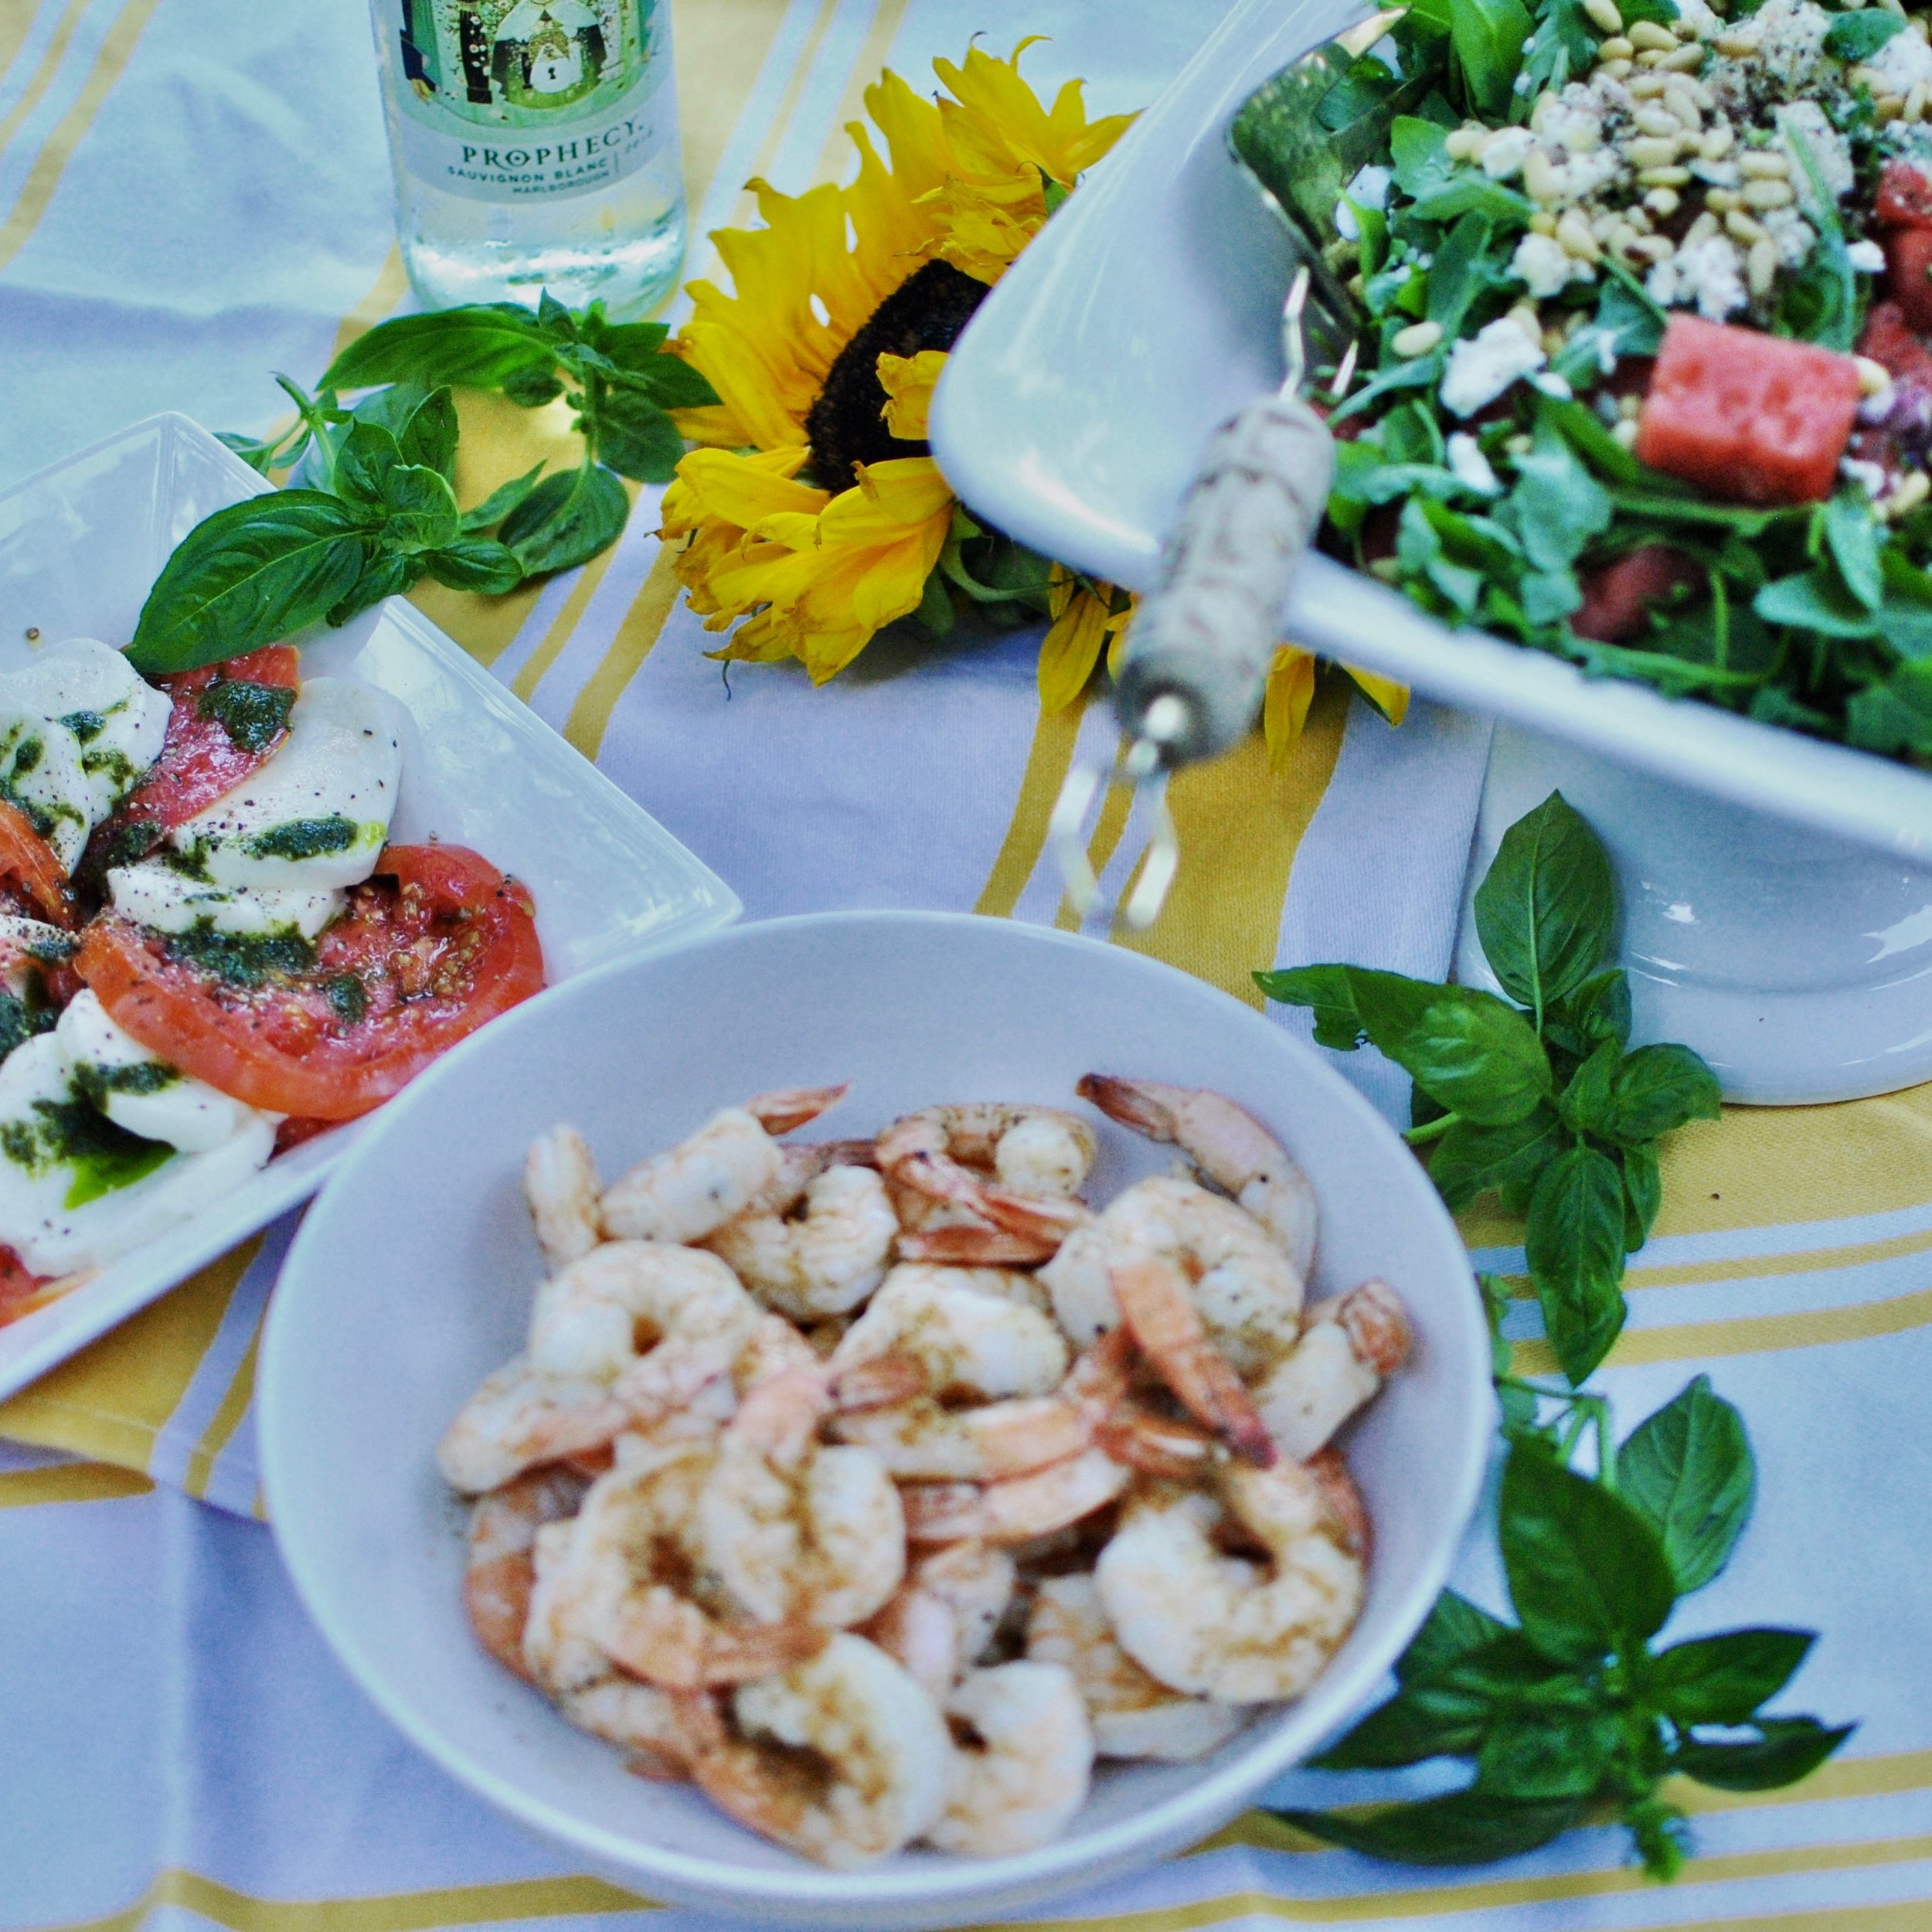 watermelon salad, roasted shrimp and capresé salad